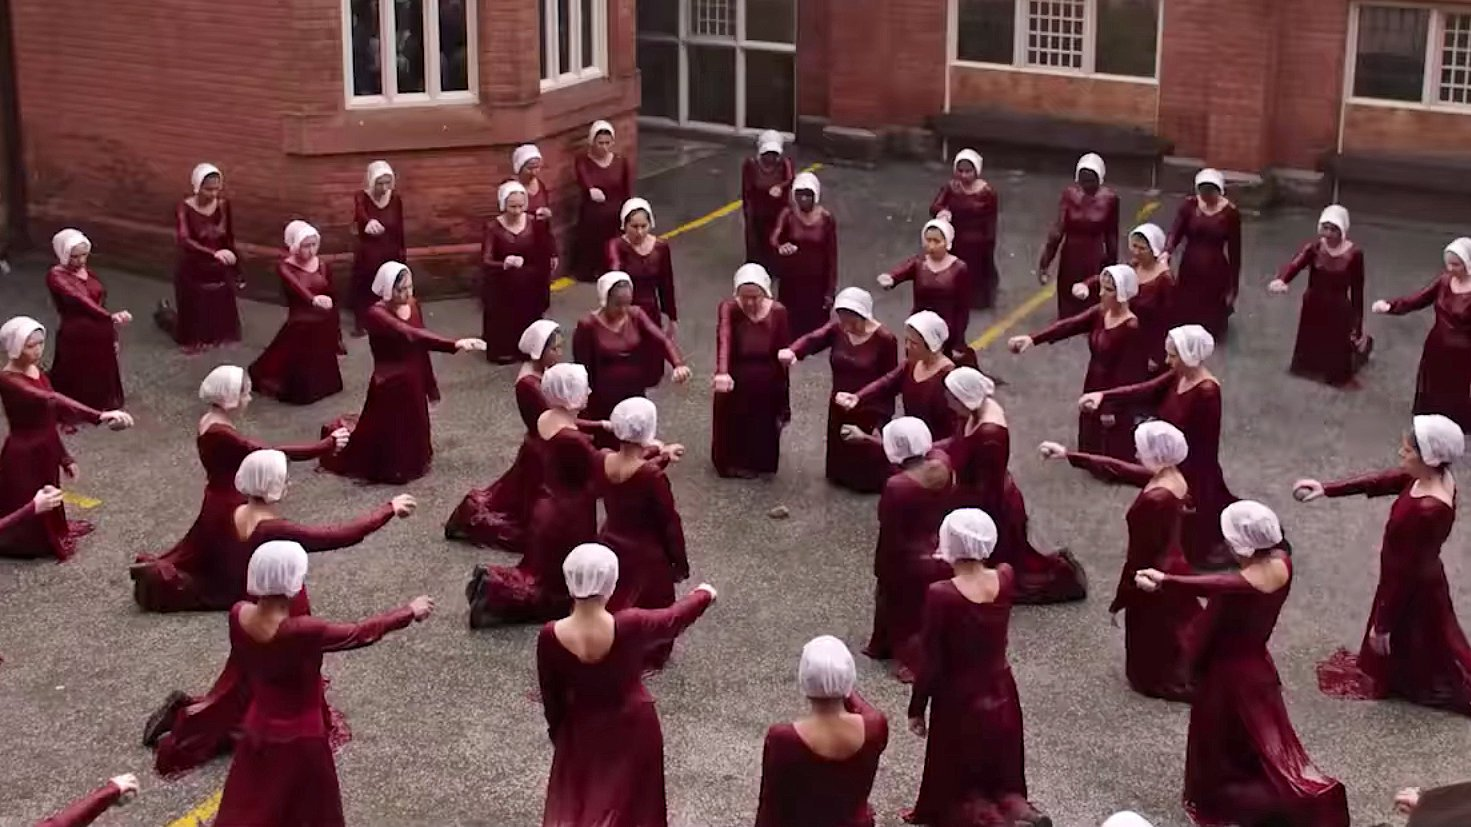 The Handmaid's Tale Rocks